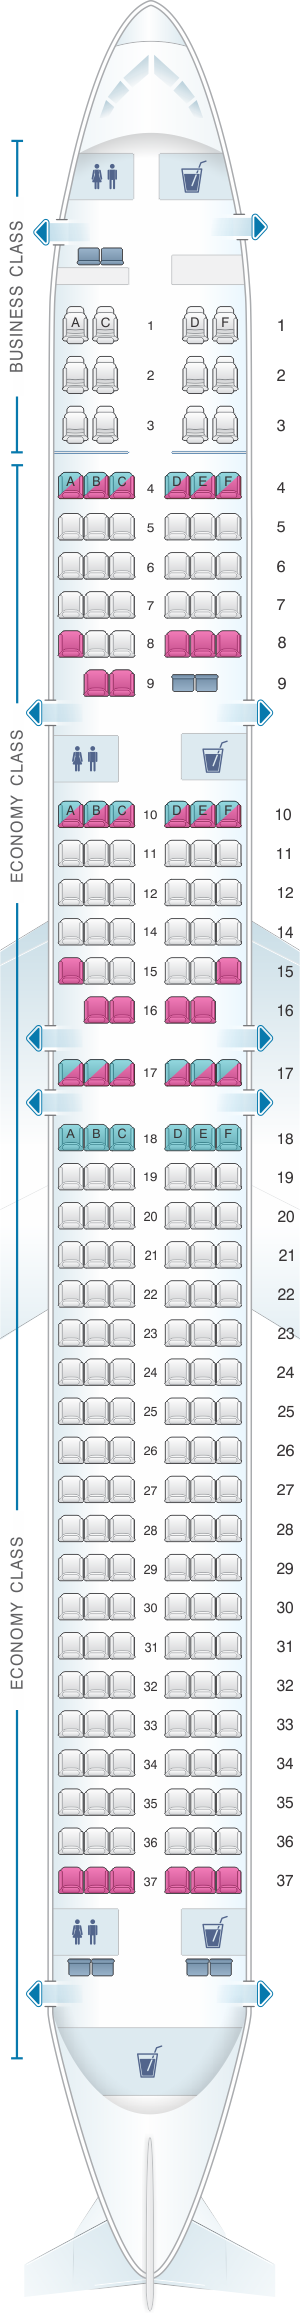 Seat map for Xiamen Airlines Boeing B757 200 204pax